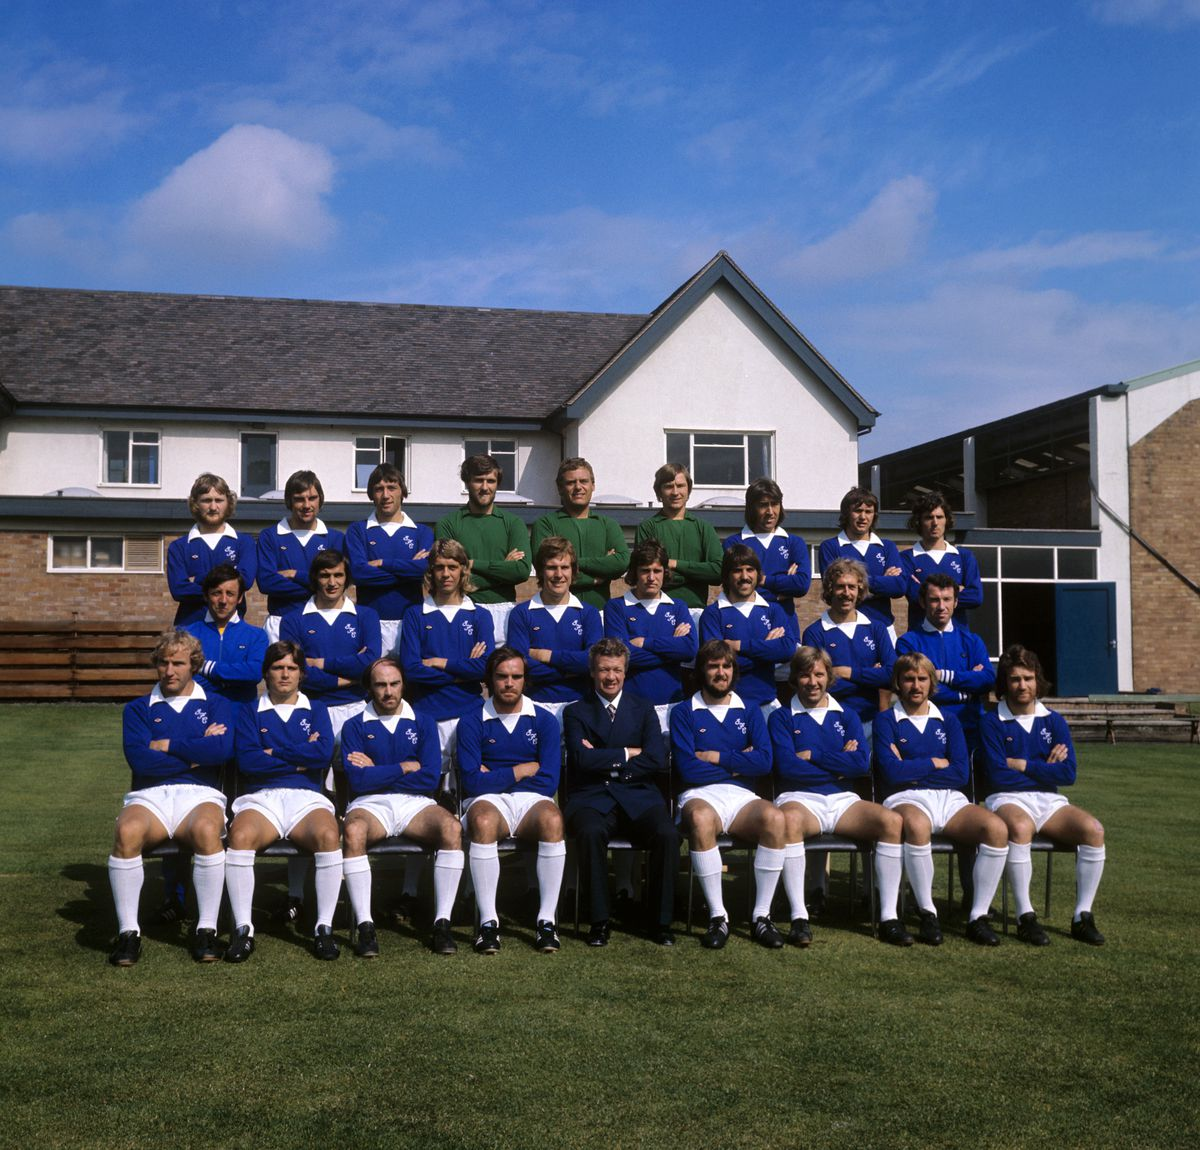 Soccer - League Division One - Everton Photocall